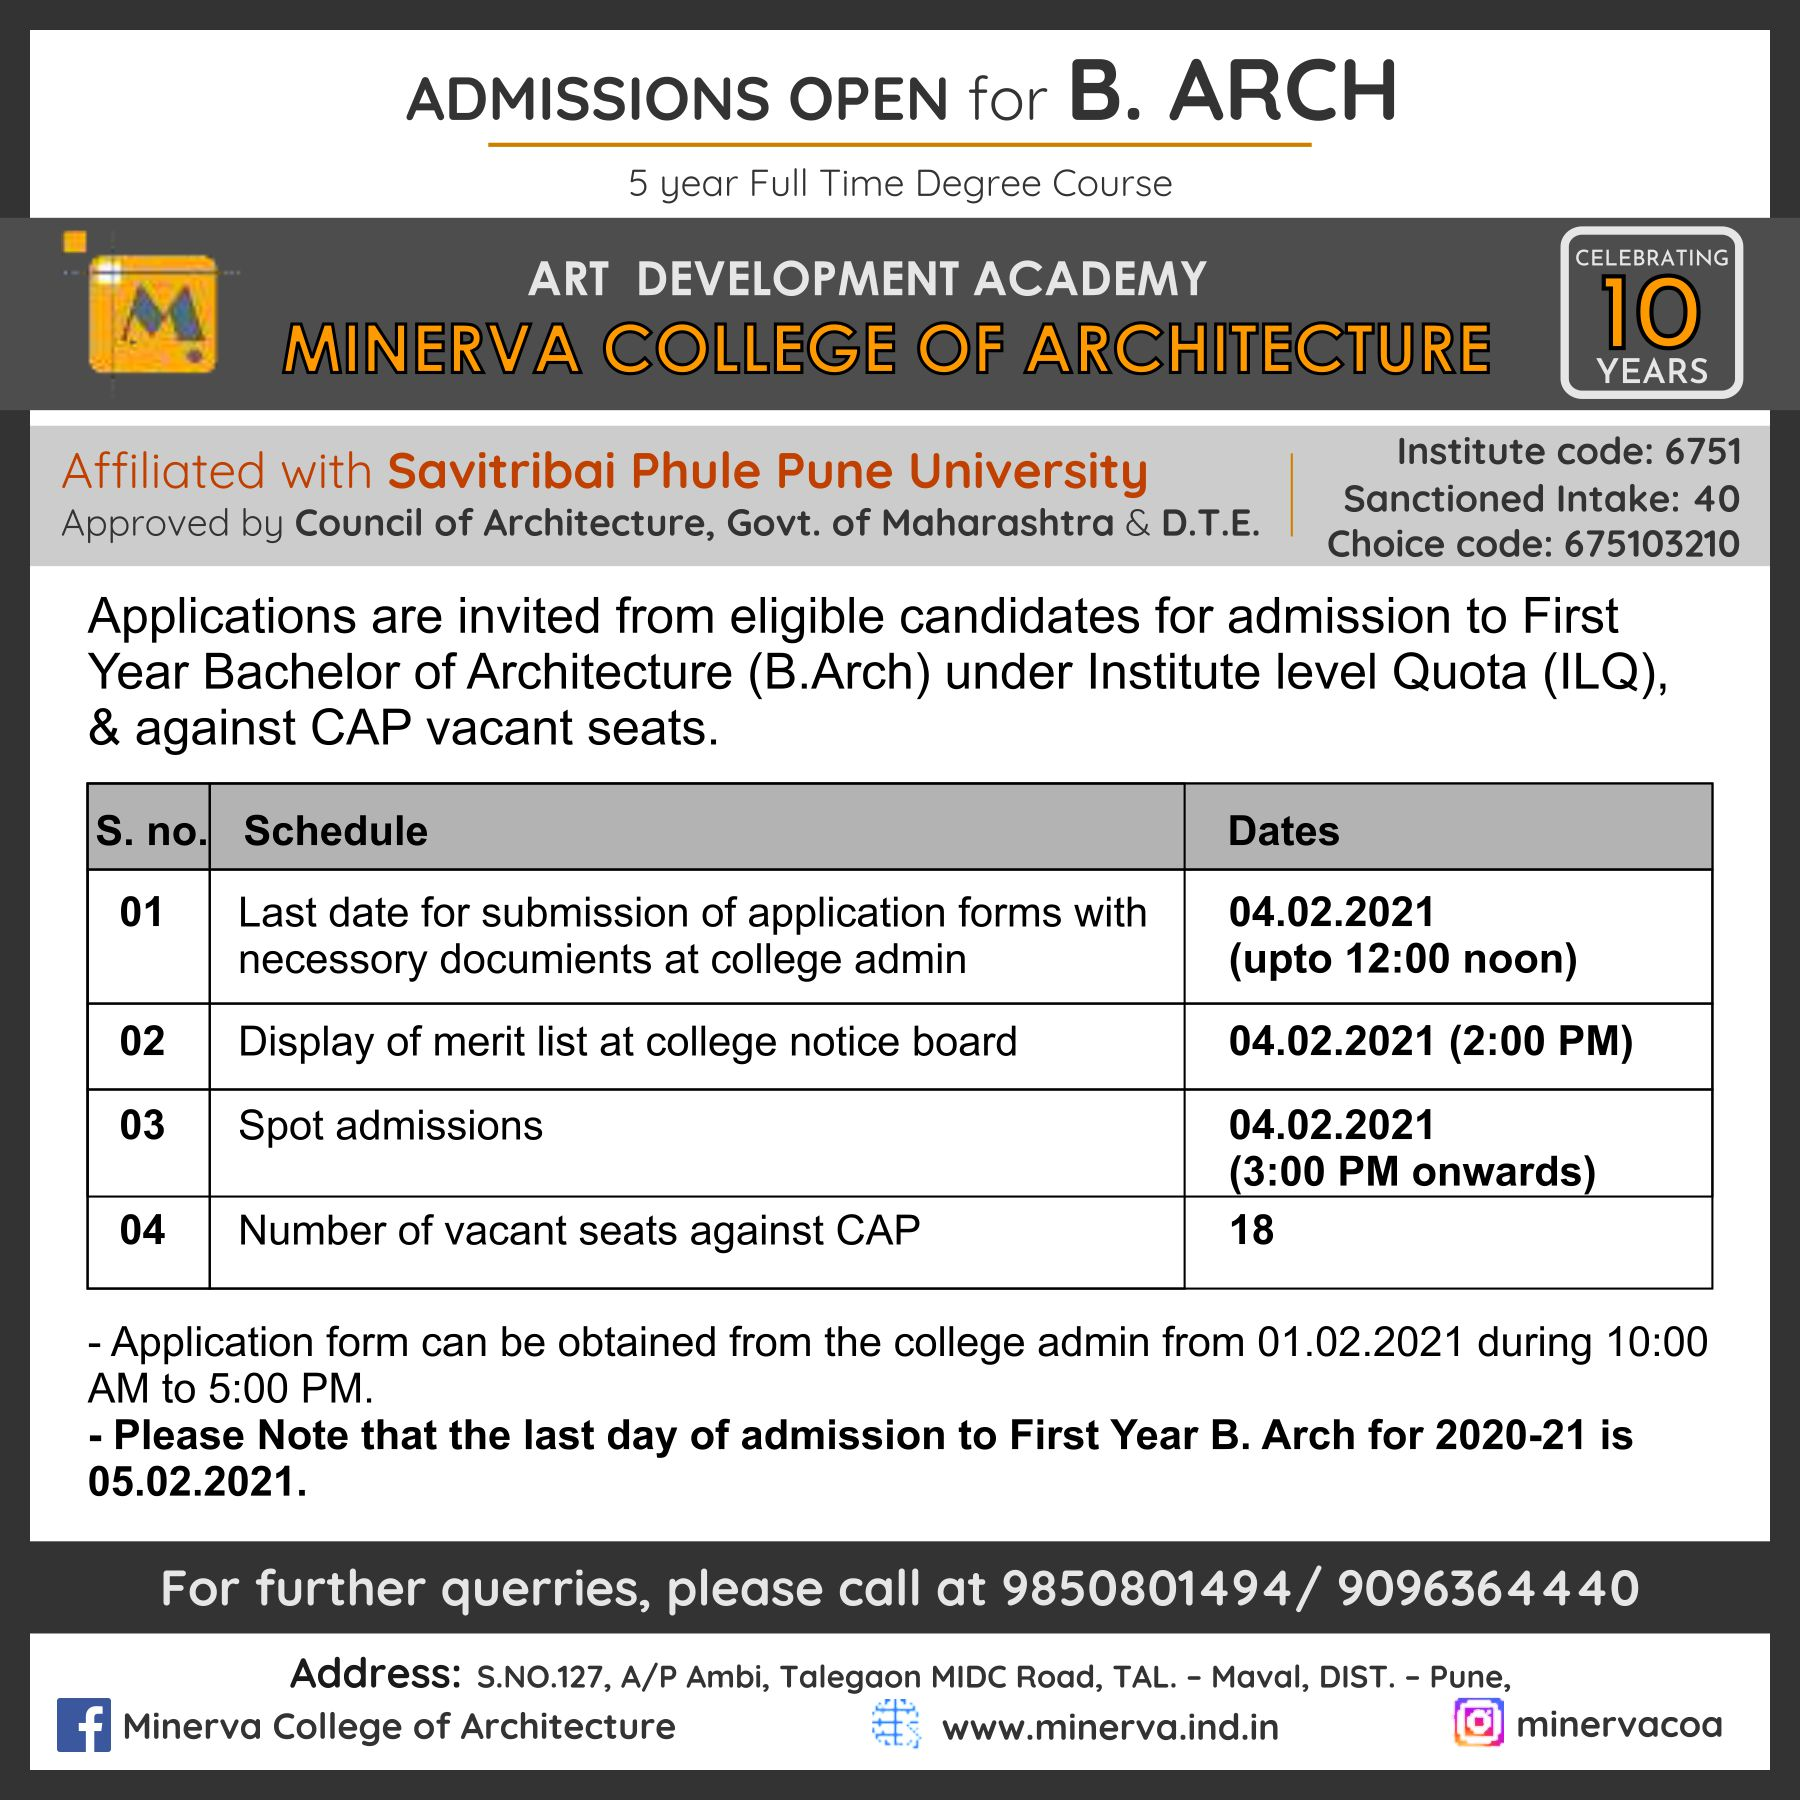 MCOA Admissions Open